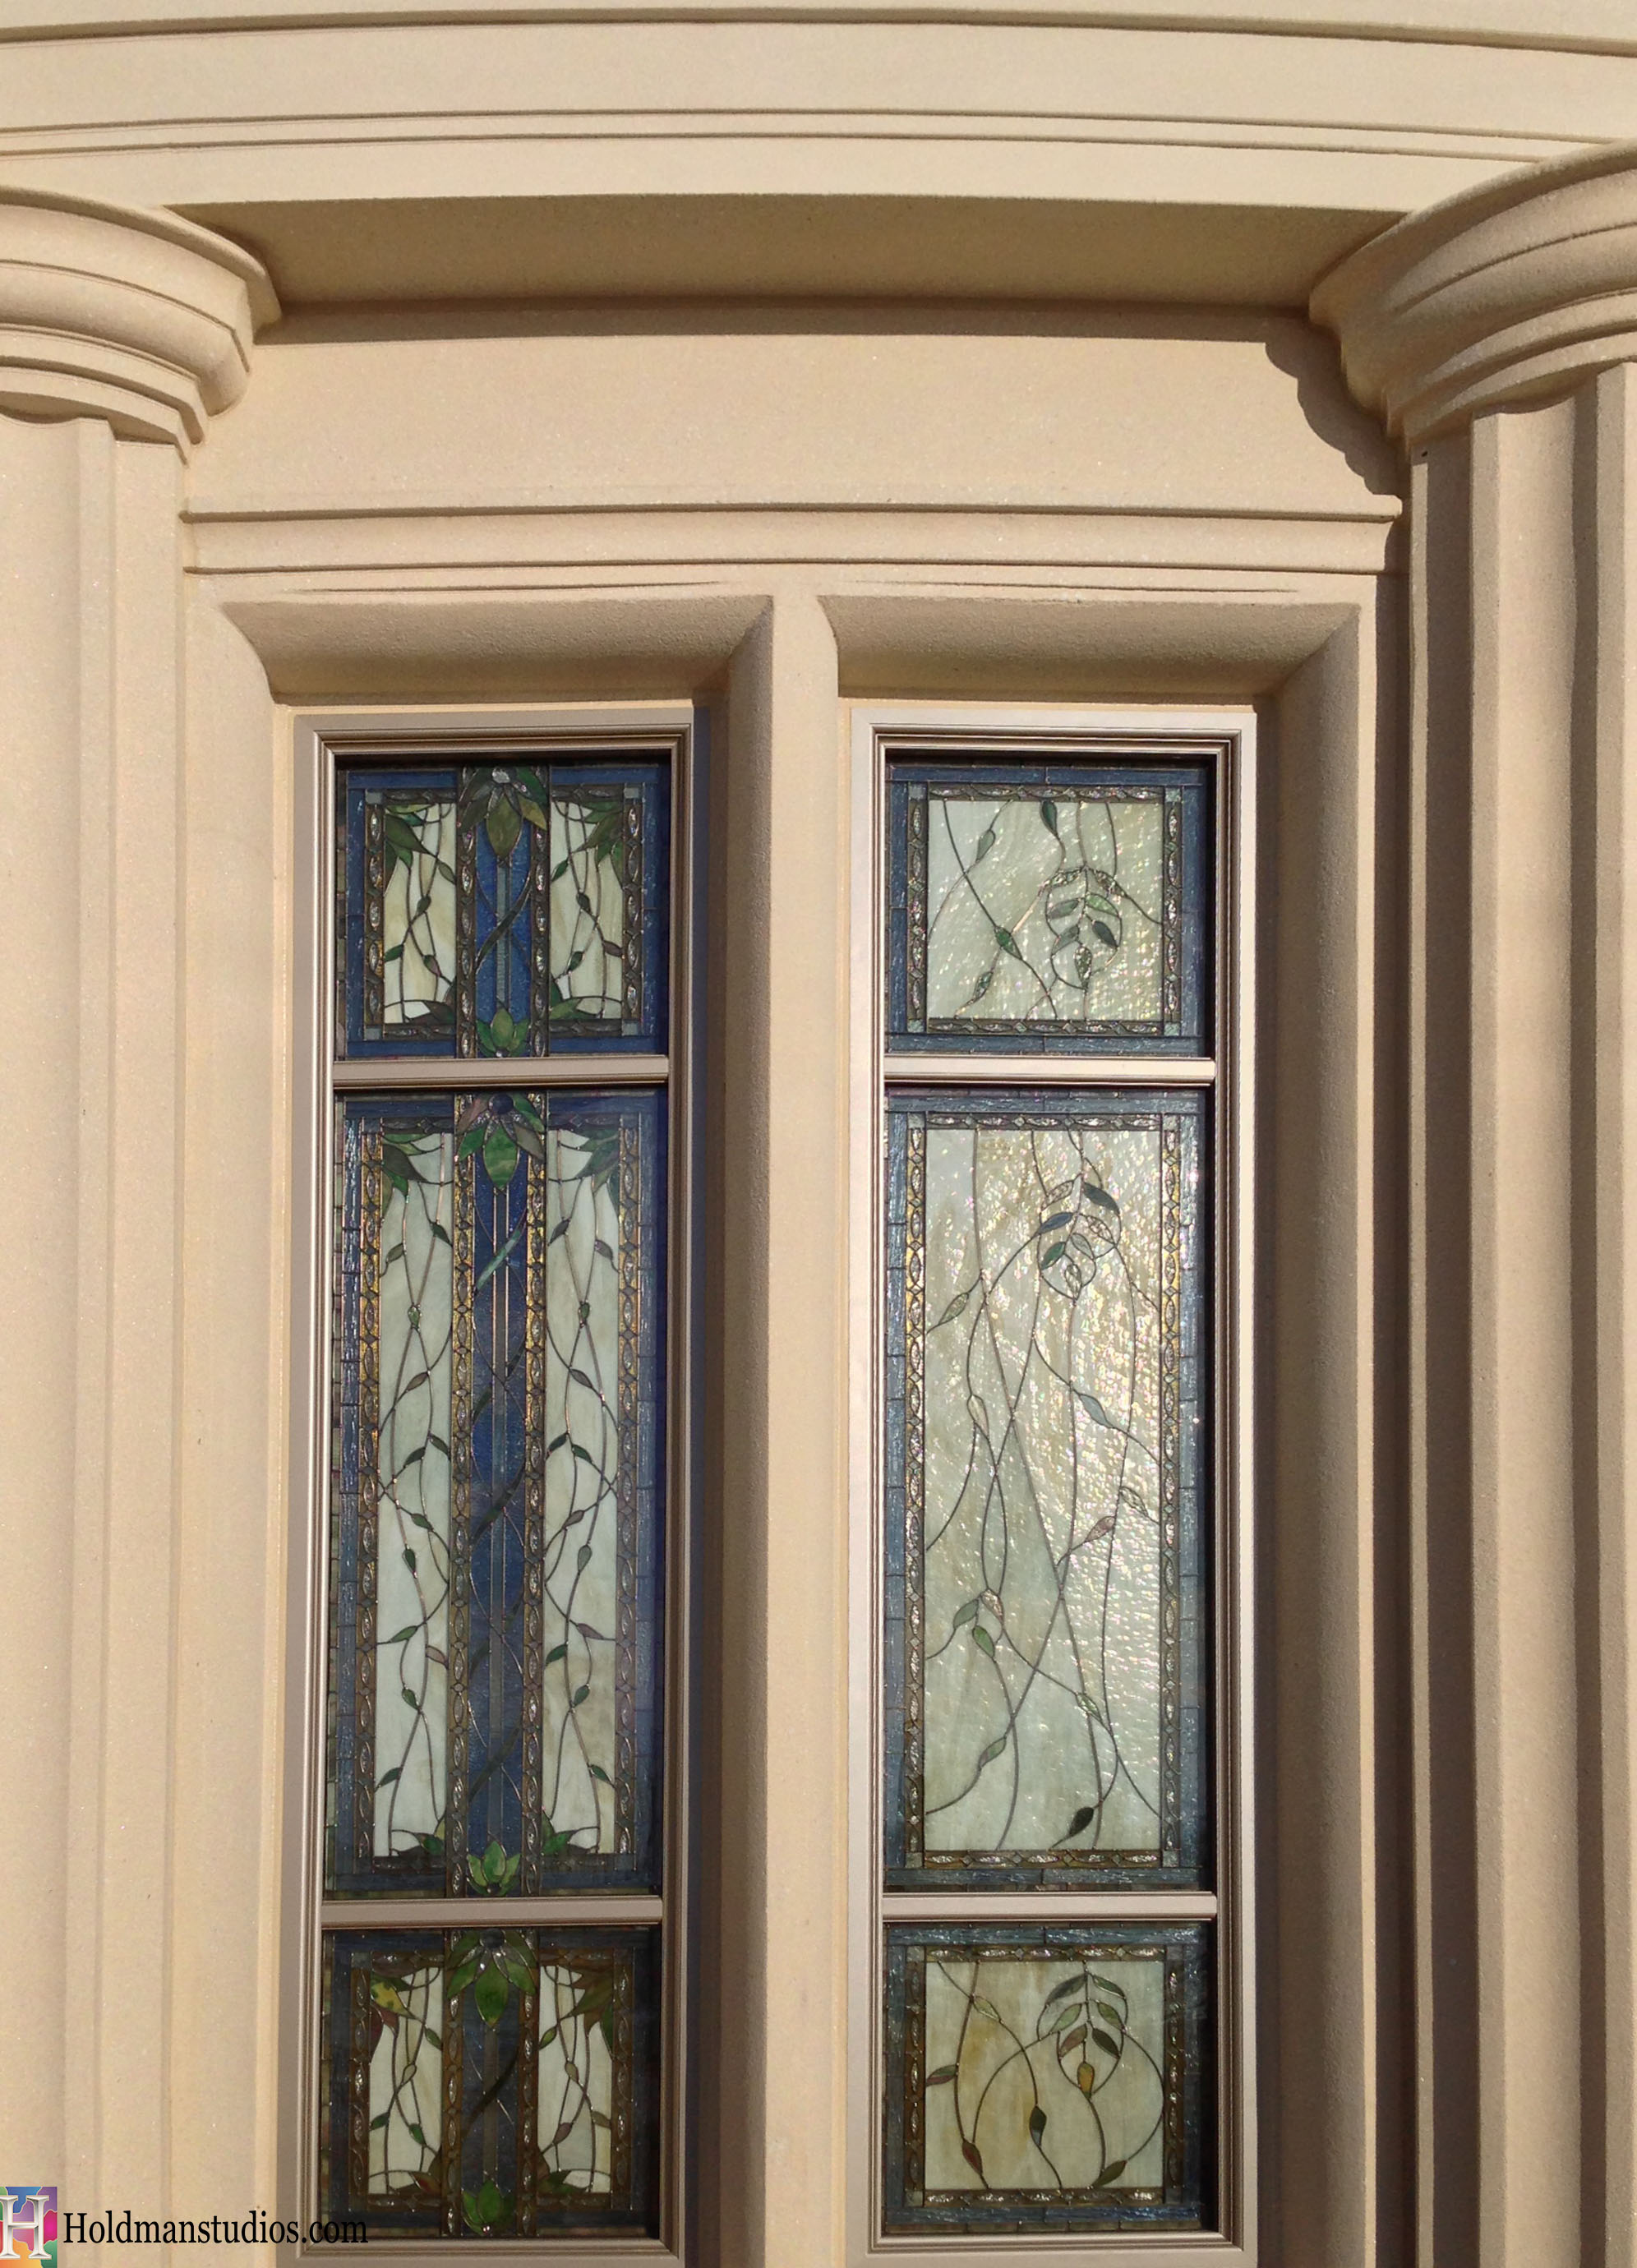 Holdman_Studios_Stained_Art_Glass_Payson_Utah_Temple_Apple_Blossoms_Leaves_DNA_Spiral_Exterior_Windows_Closeup.jpg